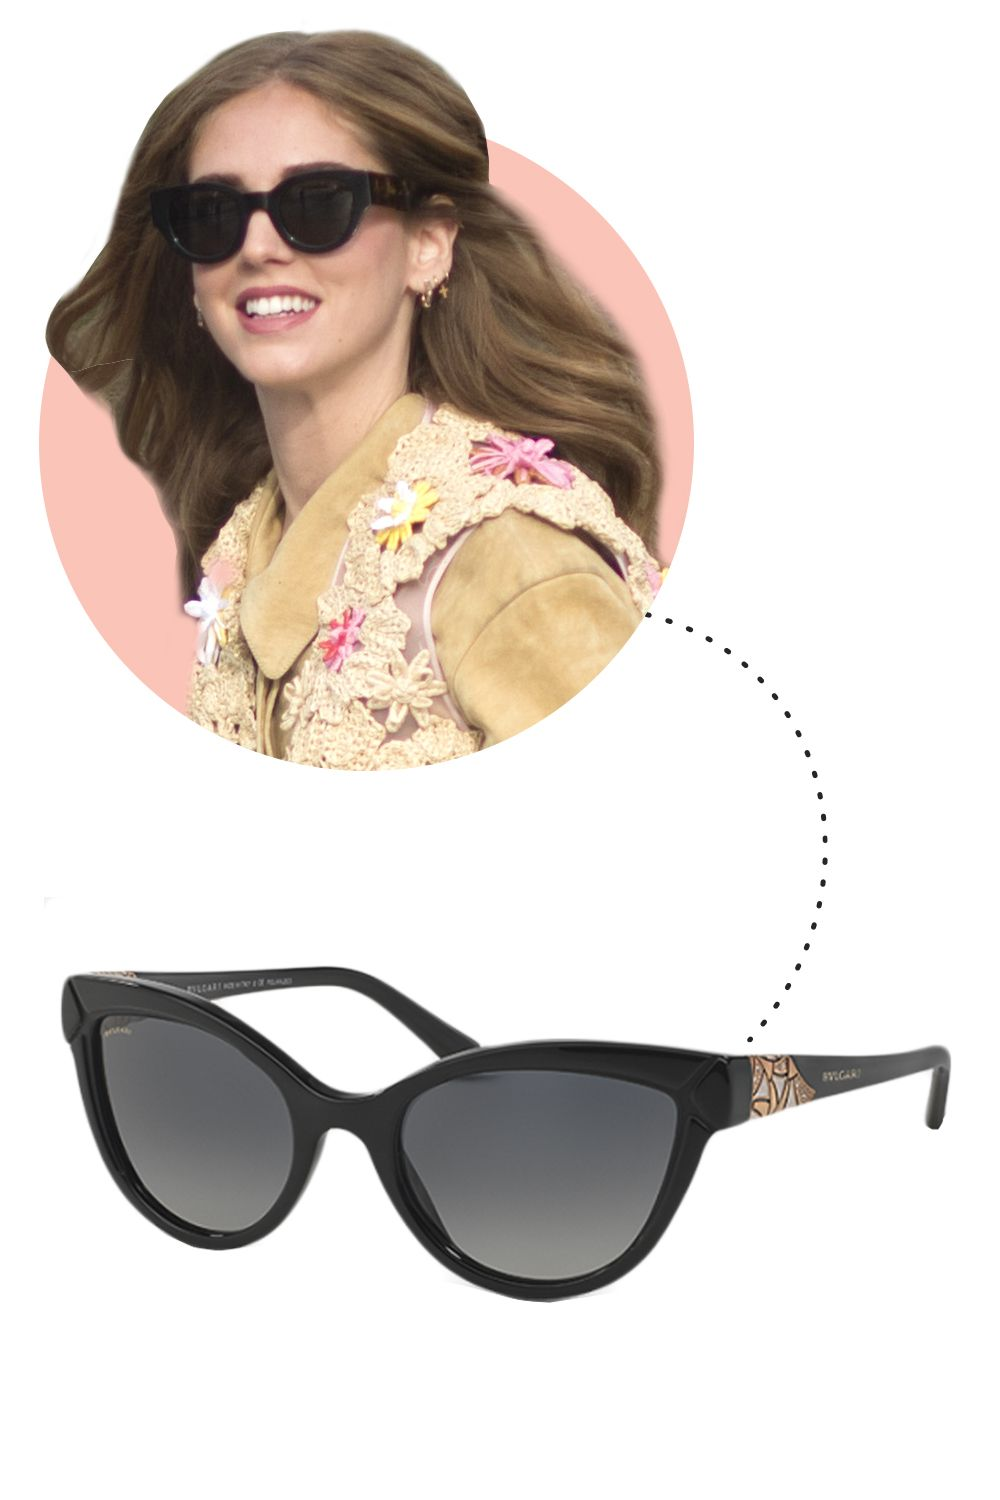 "<p>Italian street style stars are rarely seen without a massive pair of sunglasses, <em>alla moda</em>! </p><p>Bulgari Diva Sunglasses, $500&#x3B; <a href=""http://www.bulgari.com/en-us/products/902787-e.html"">bulgari.com</a></p>"